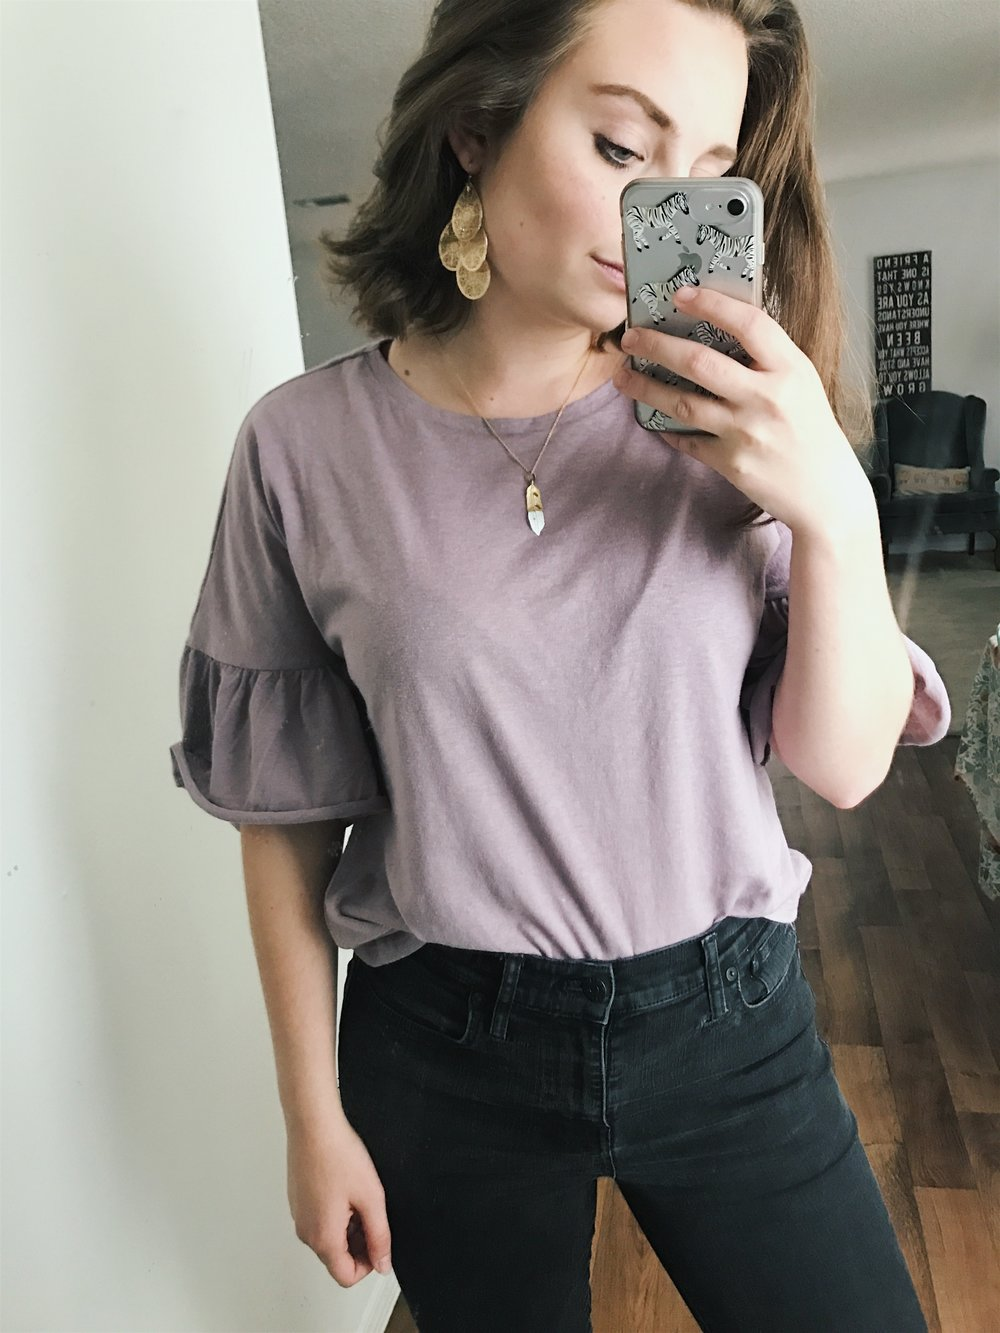 purchased this top for only $3!